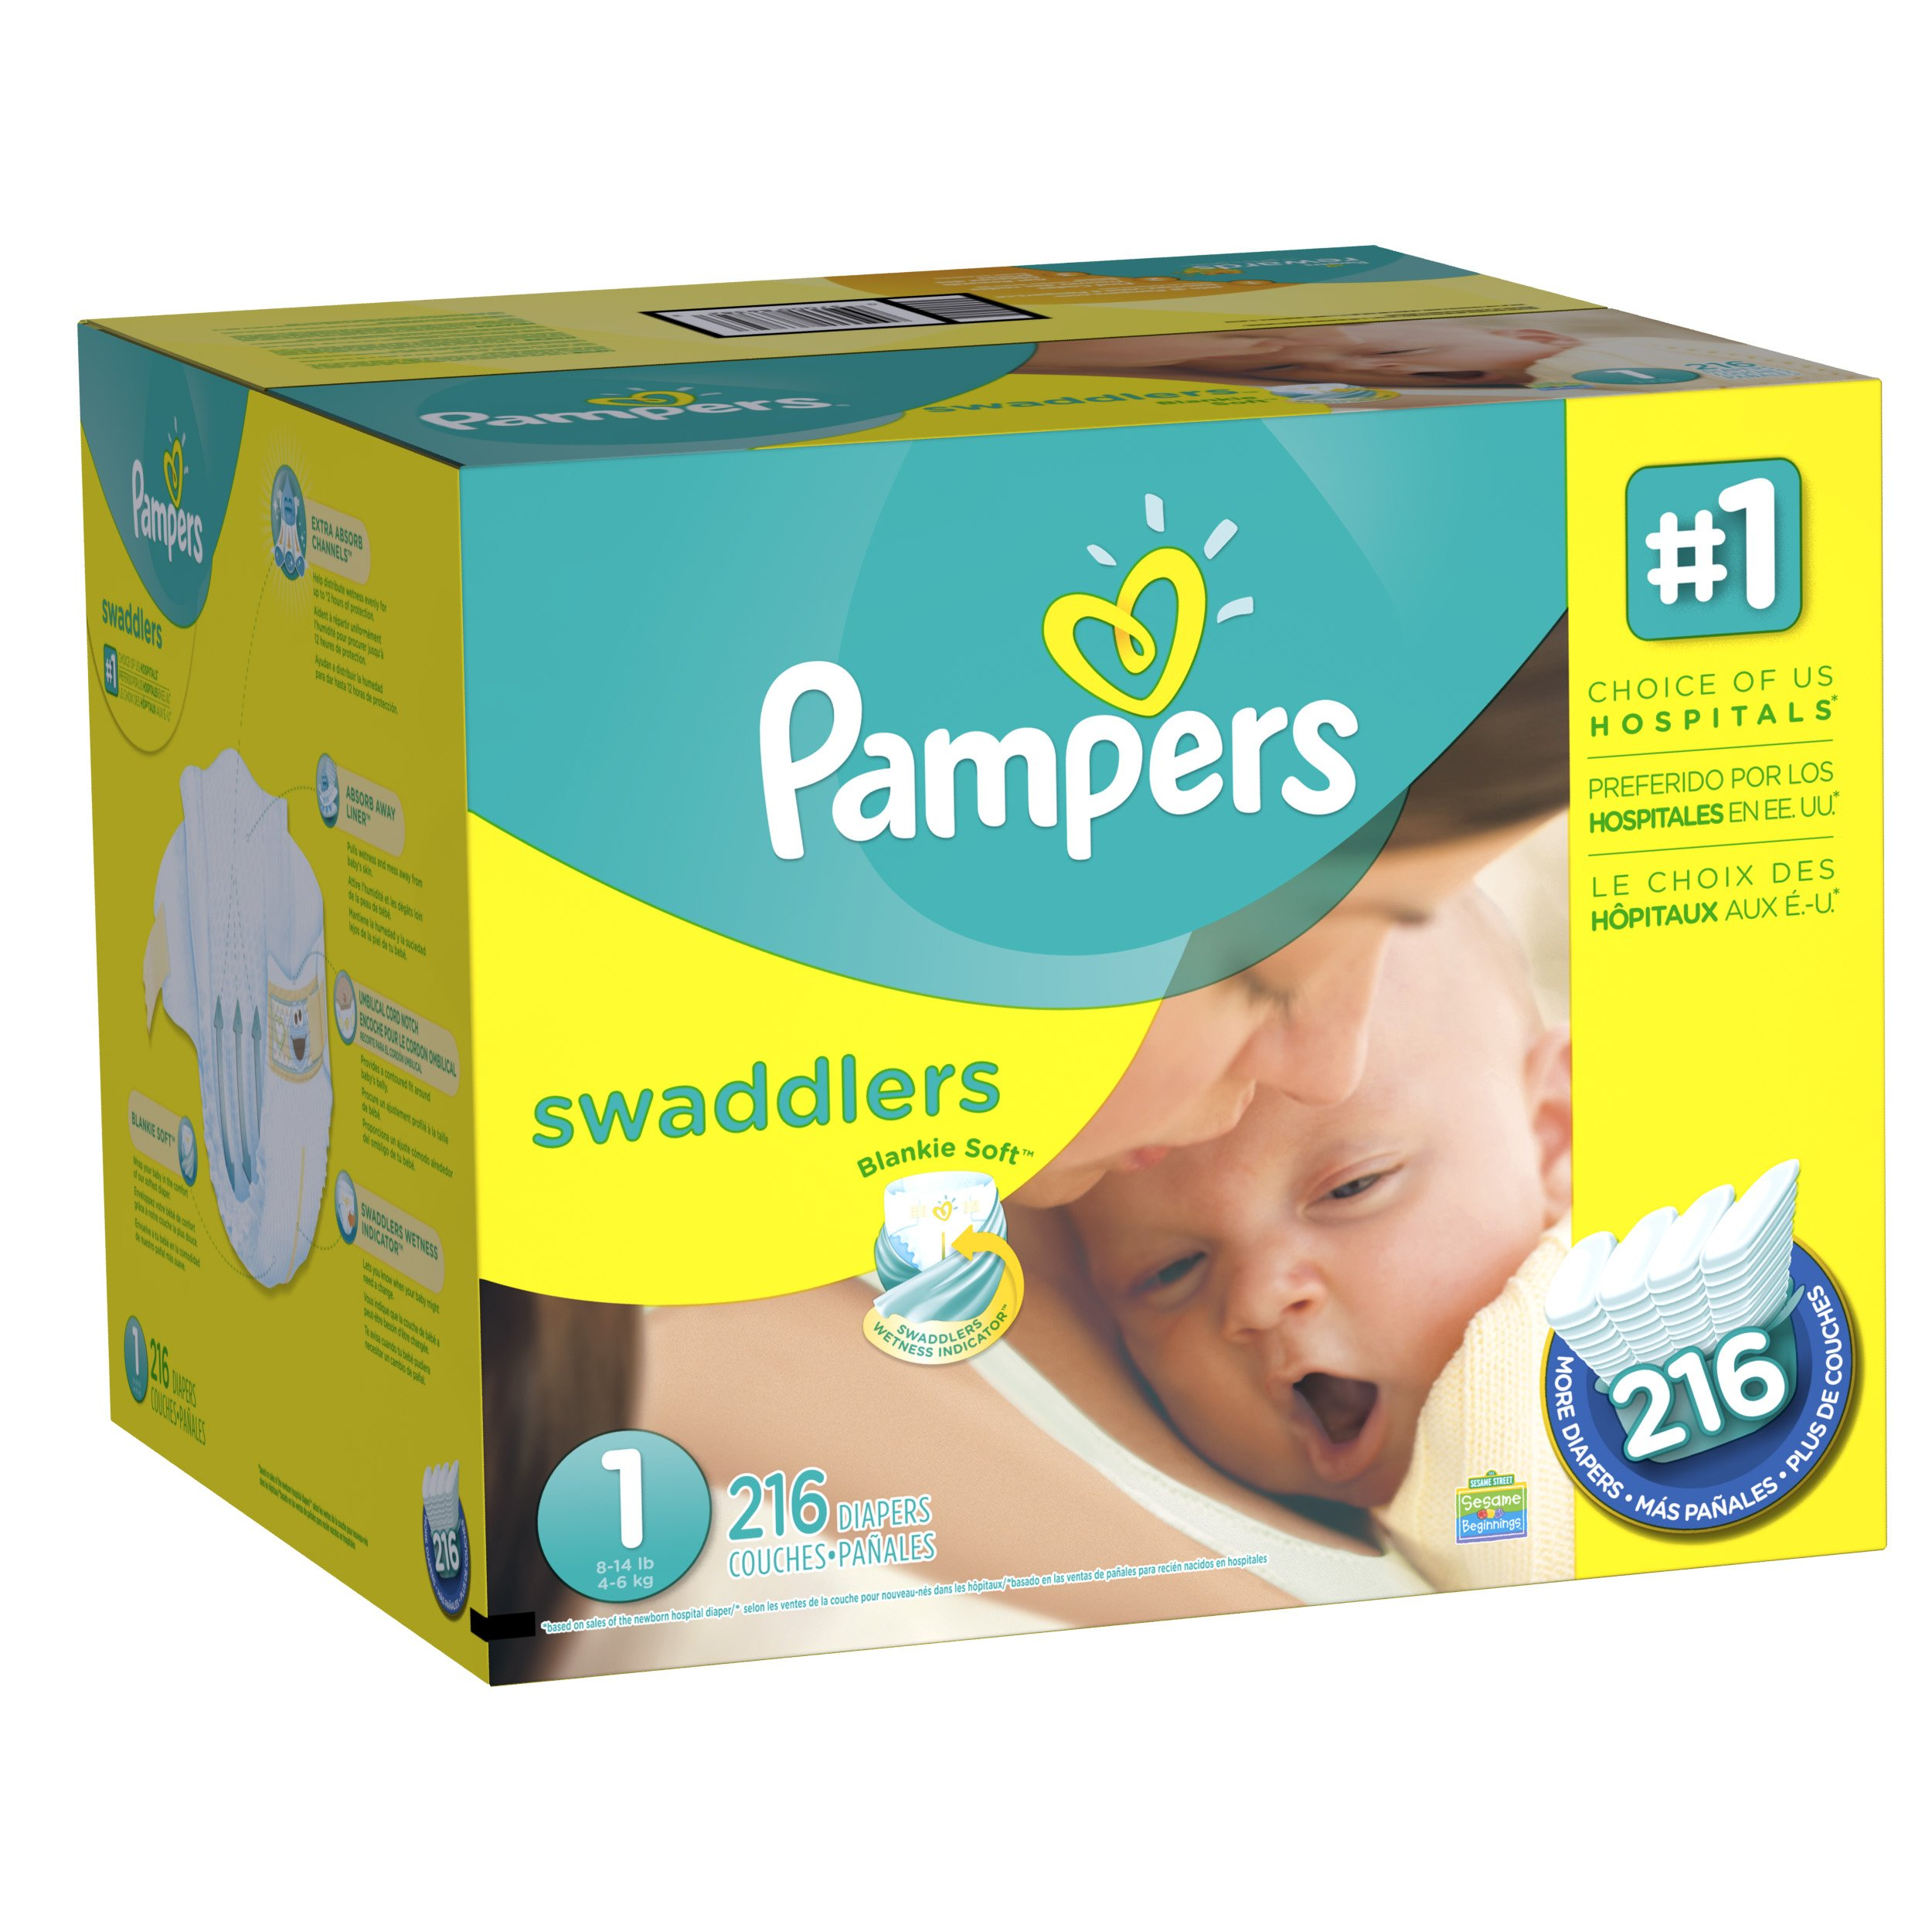 Diapers Newborn / Size 1 (8-14 lb), 216 Count - Pampers Swaddlers Sensitive Disposable Baby Diapers, (old version) (Packaging May Vary) by Pampers